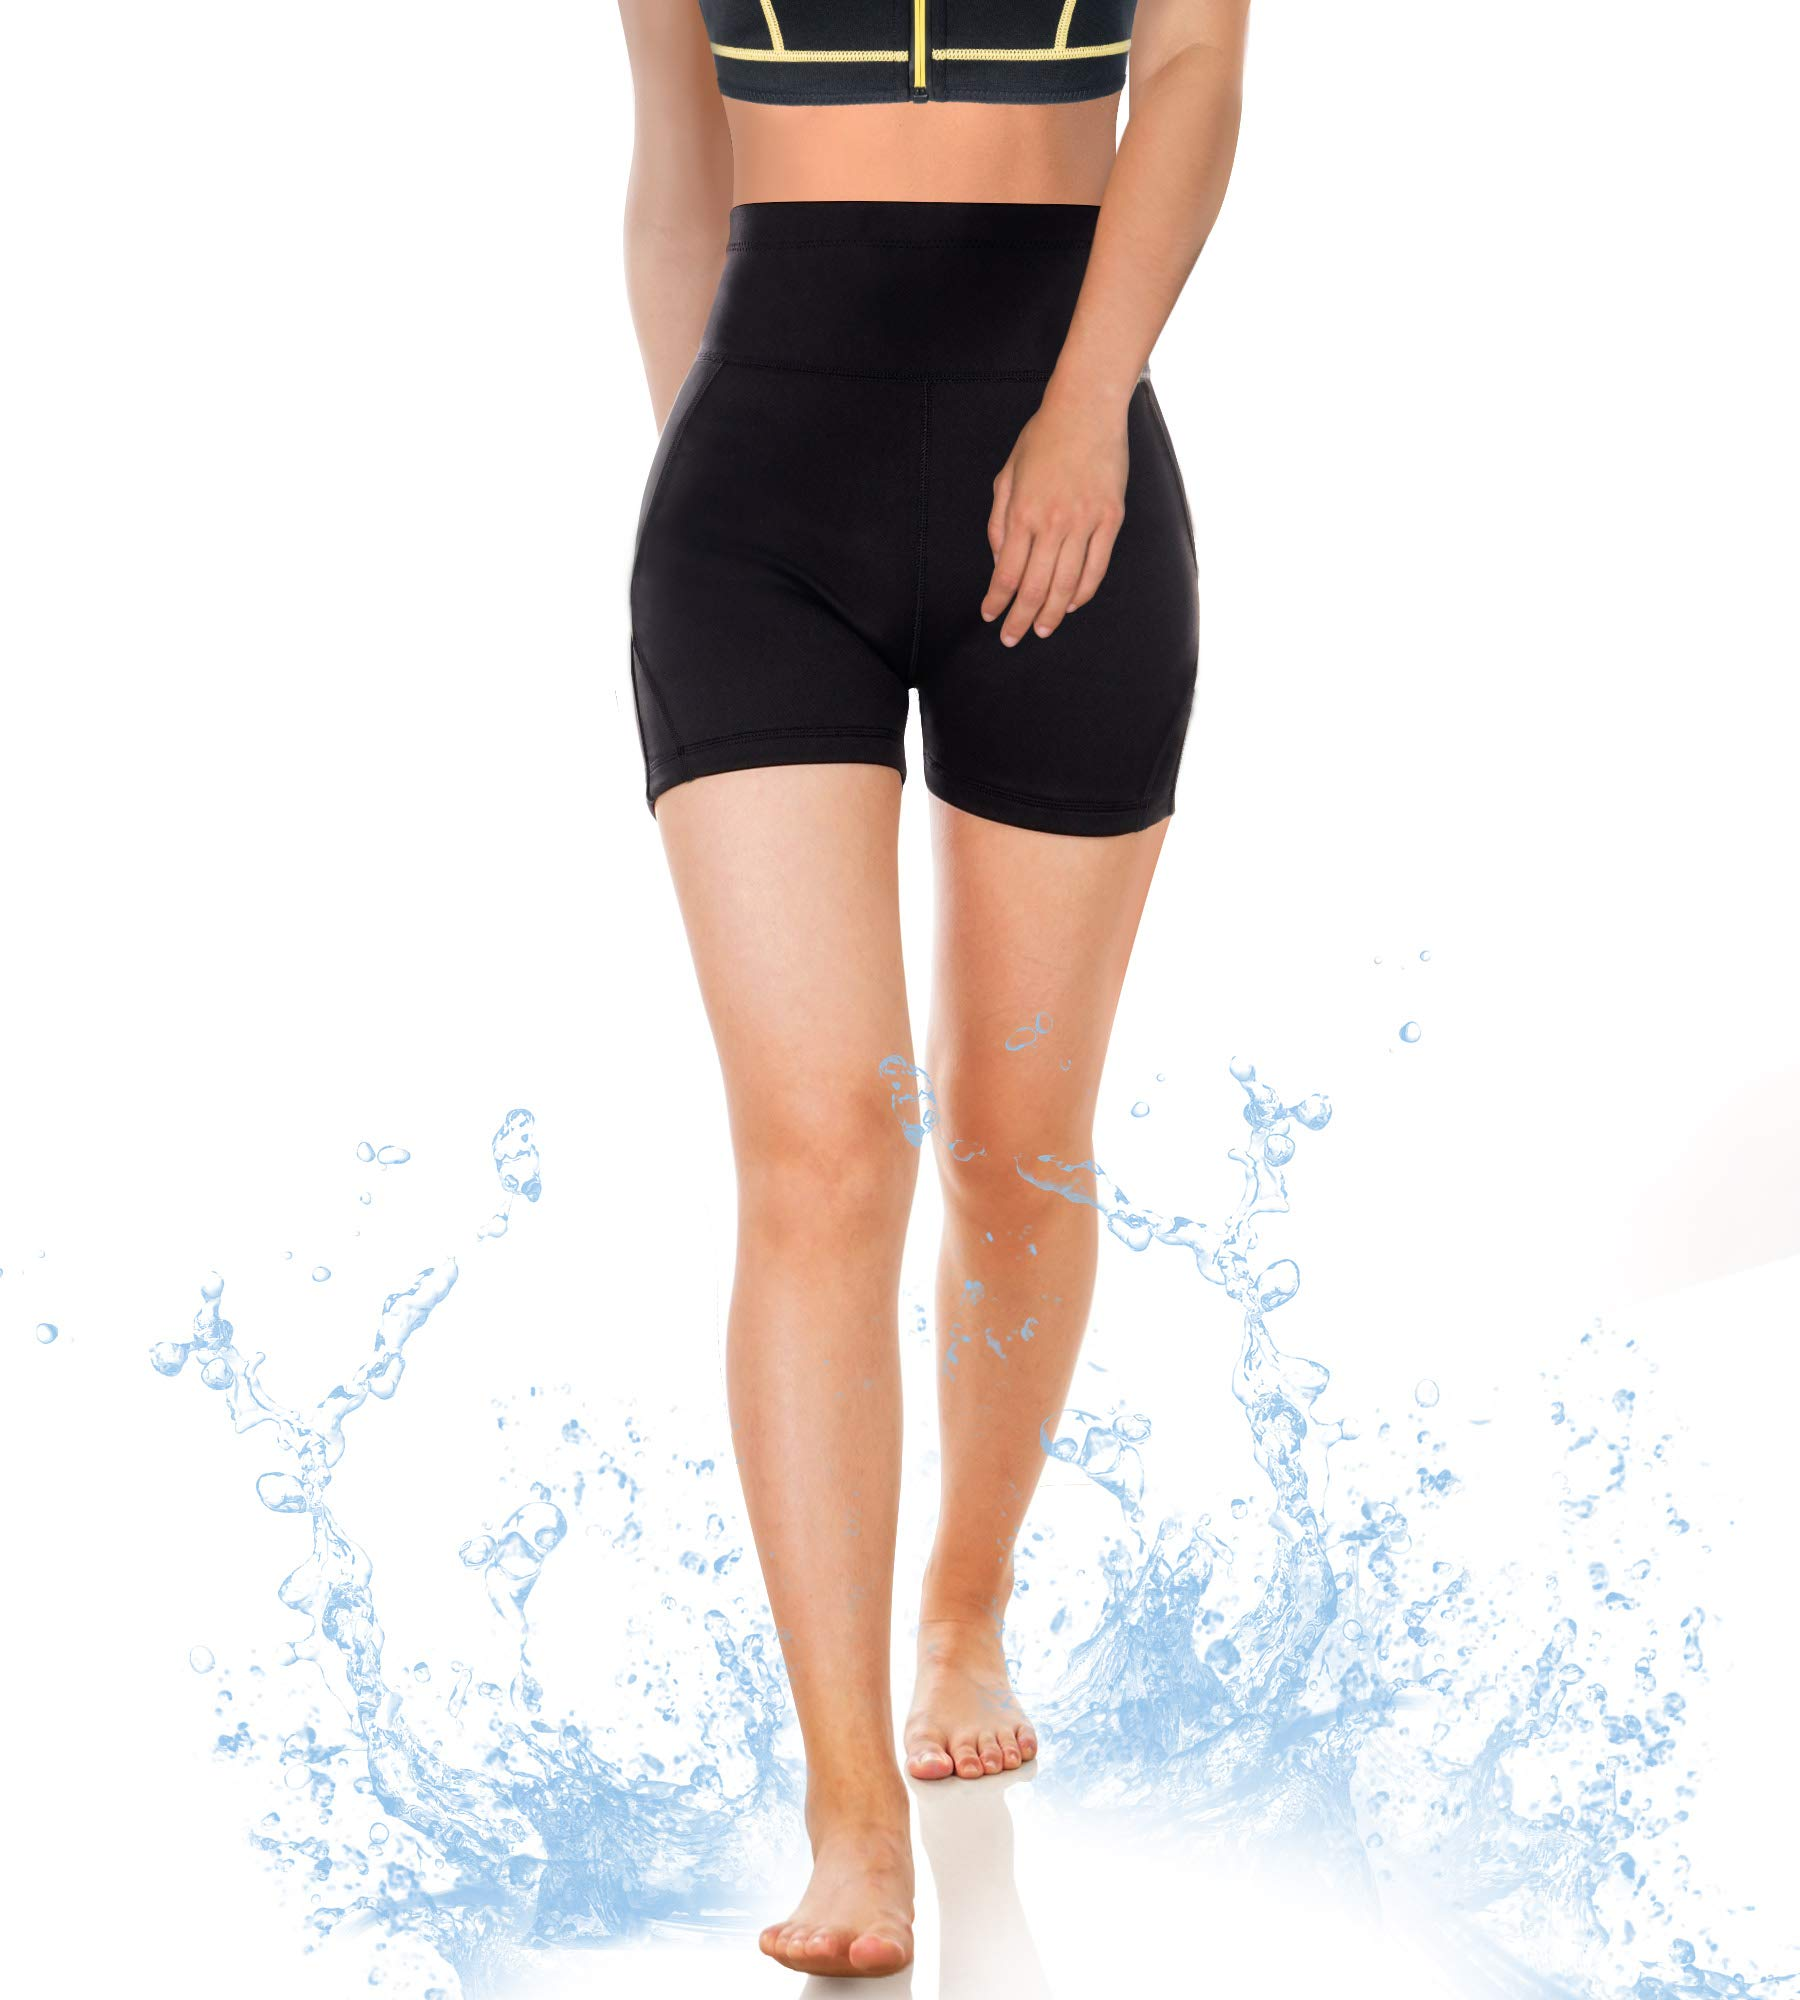 CtriLady Women Wetsuit Shorts Surfing Kayaking Snorkeling Swimming Pants Swimsuit Bottom Water Sports Swimwear Capris with Back-Zipper-Pocket(Black, Large) by CtriLady